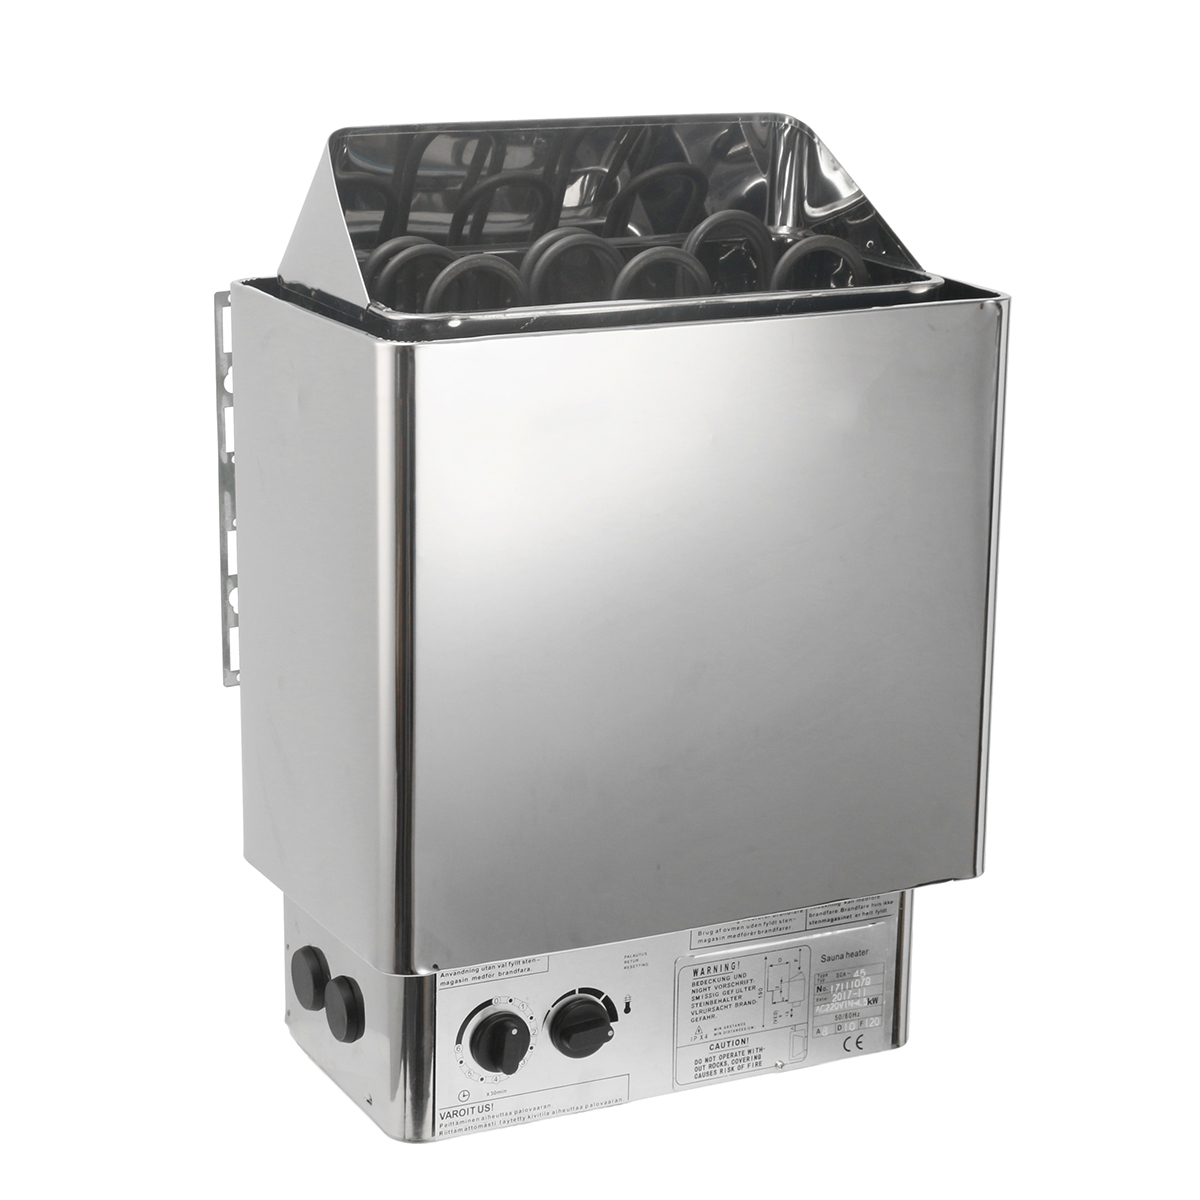 220V-Sauna-Heater-Stove-Wet-amp-Dry-Stainless-Steel-Internal-Control-0-80-SPA